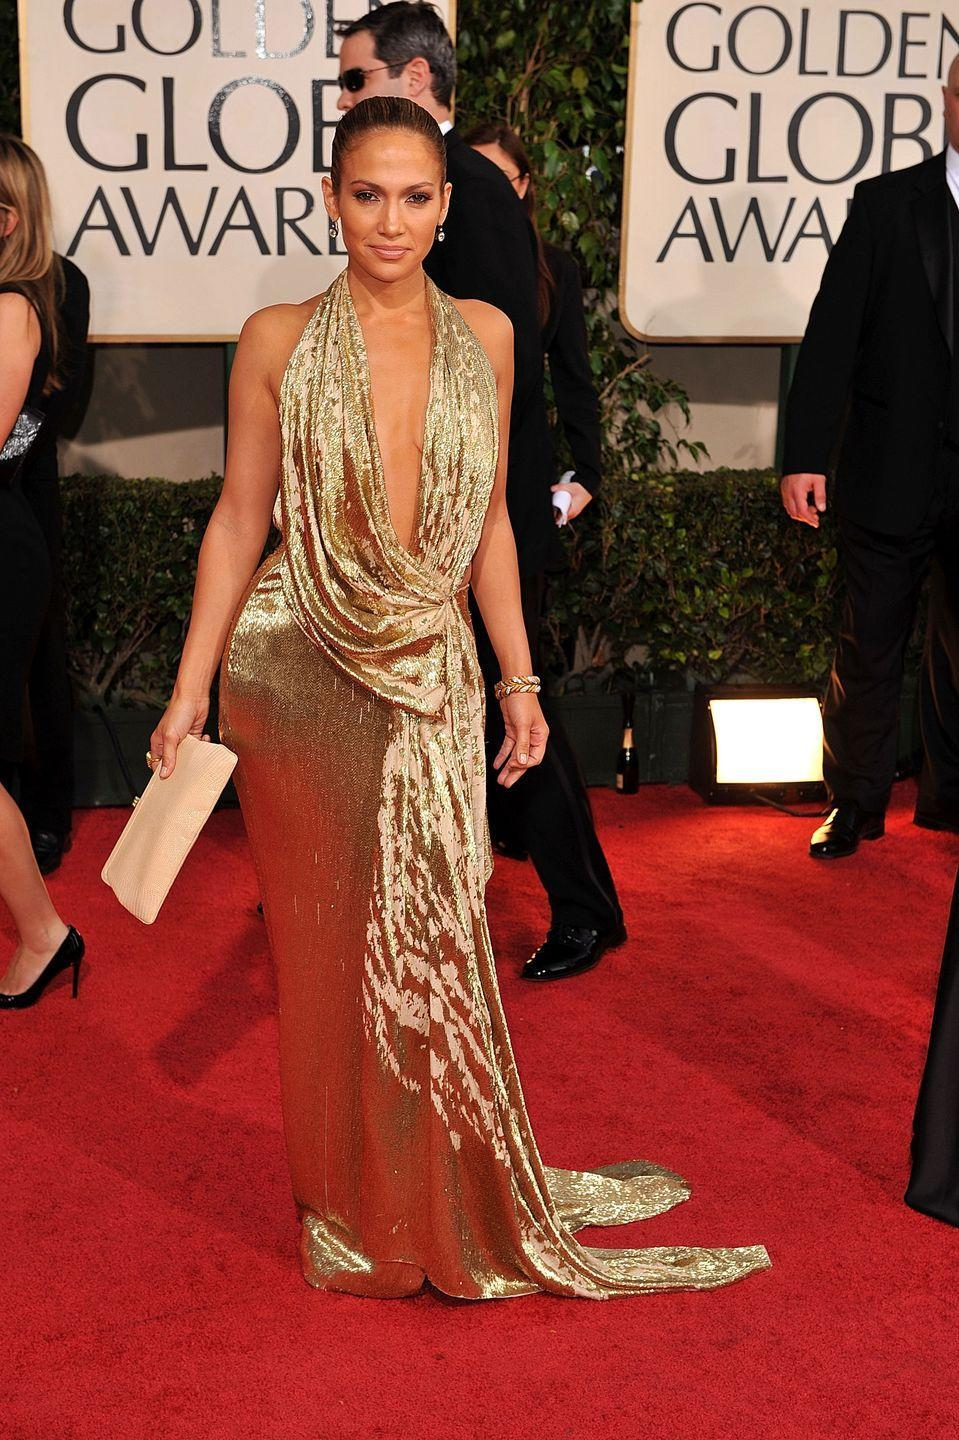 <p>It's difficult to say whether anyone does gold dresses better than J.Lo...</p>